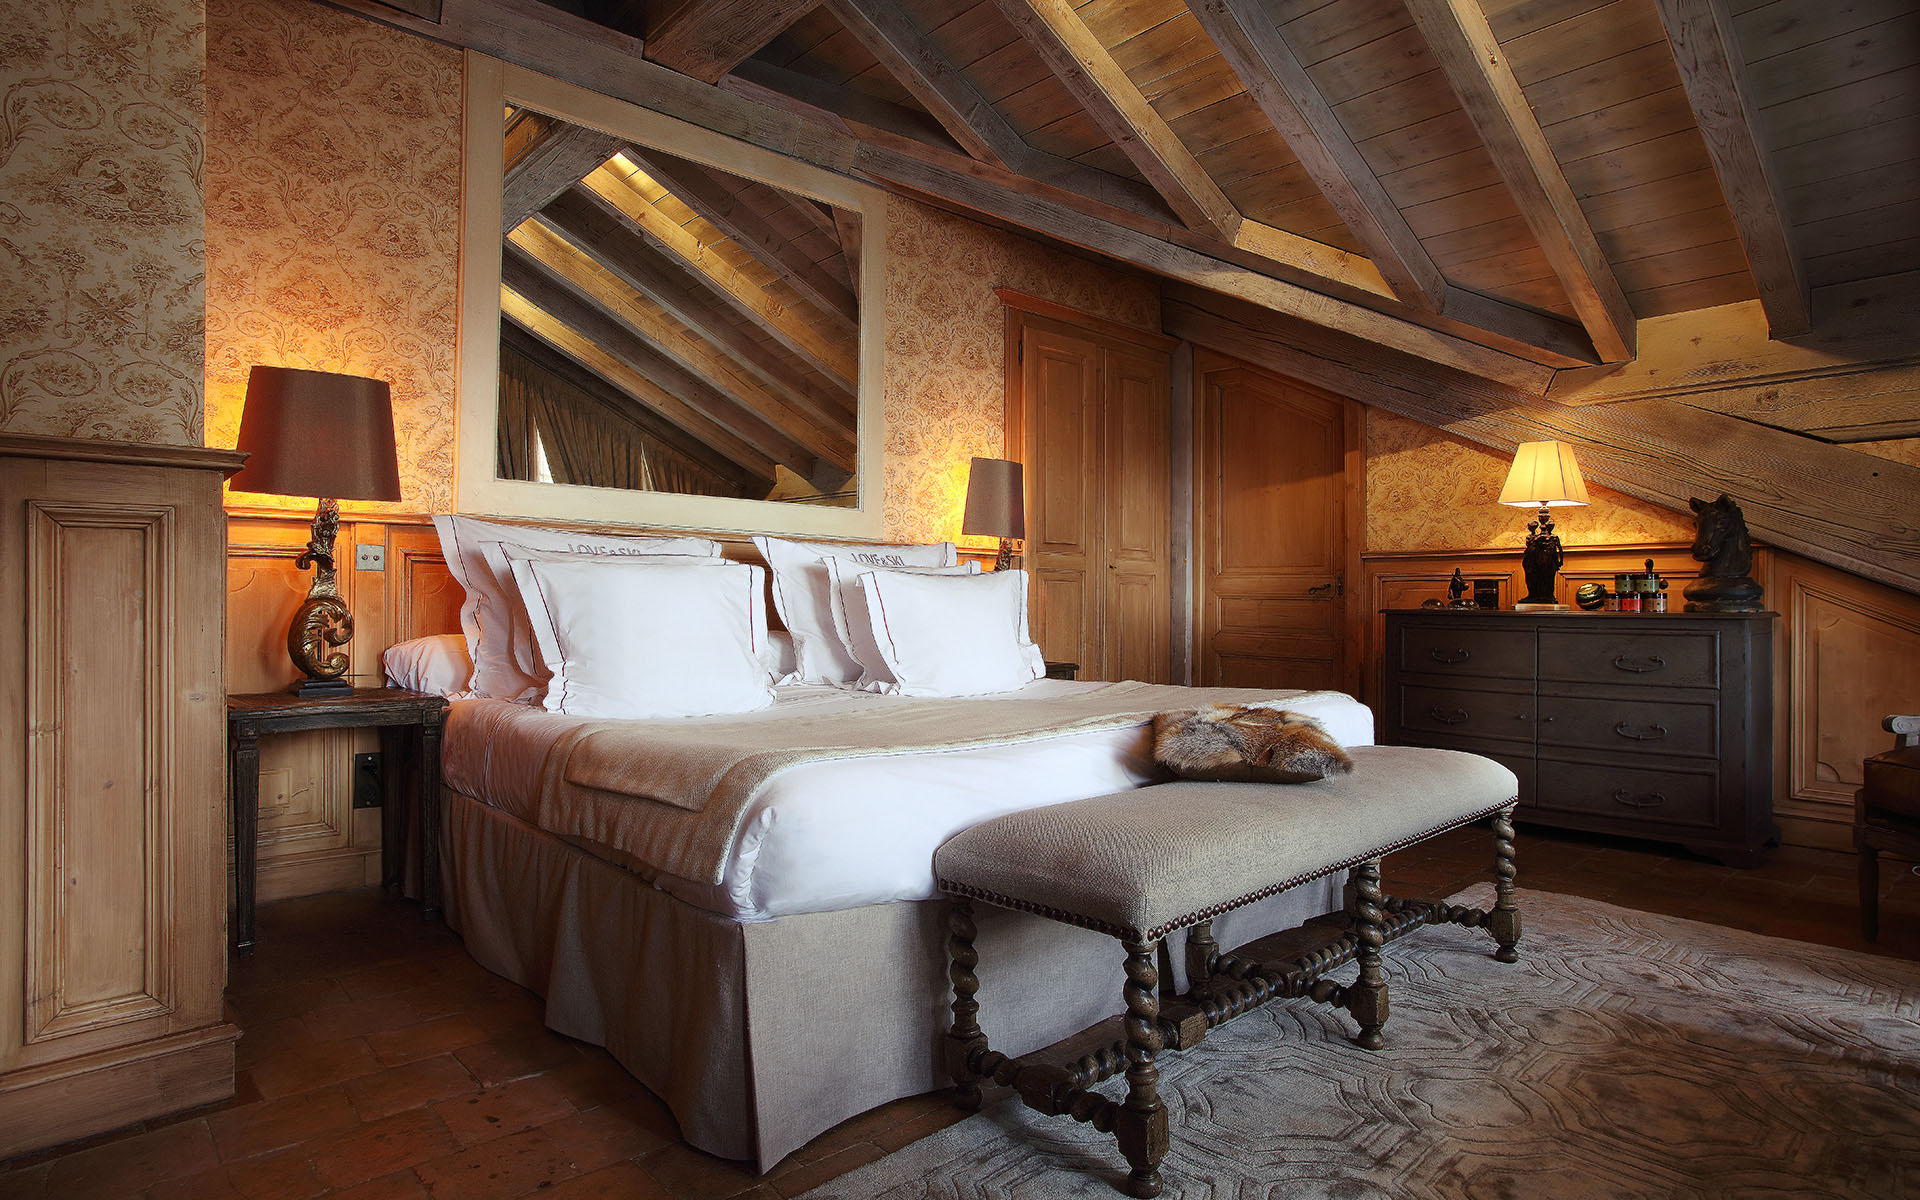 296/_import_/290/Hotel Saint Joseph/Chambre/Saint Nicolas/Saint_joseph_courchevel_appartement_saint_nicolas15.jpg